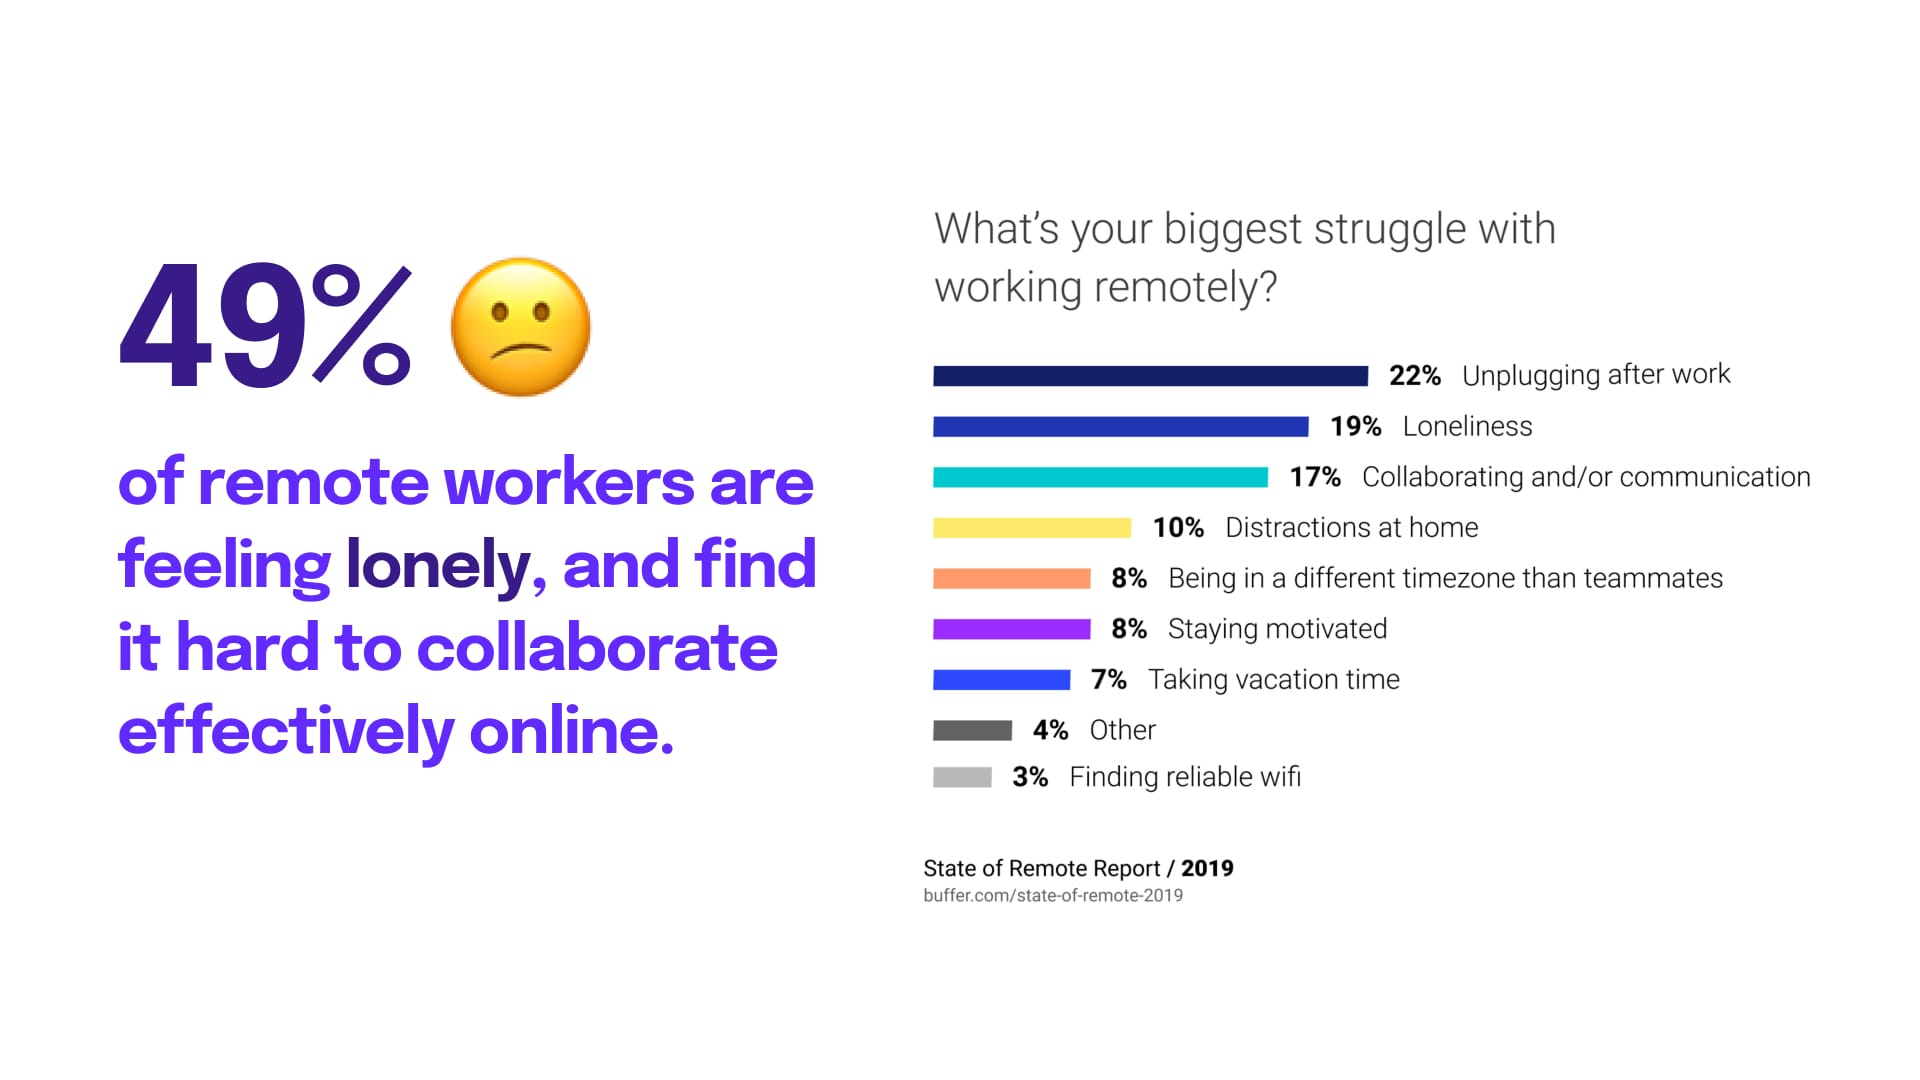 49% of remote workers are feeling lonely, and find it hard to collaborate effectively online.